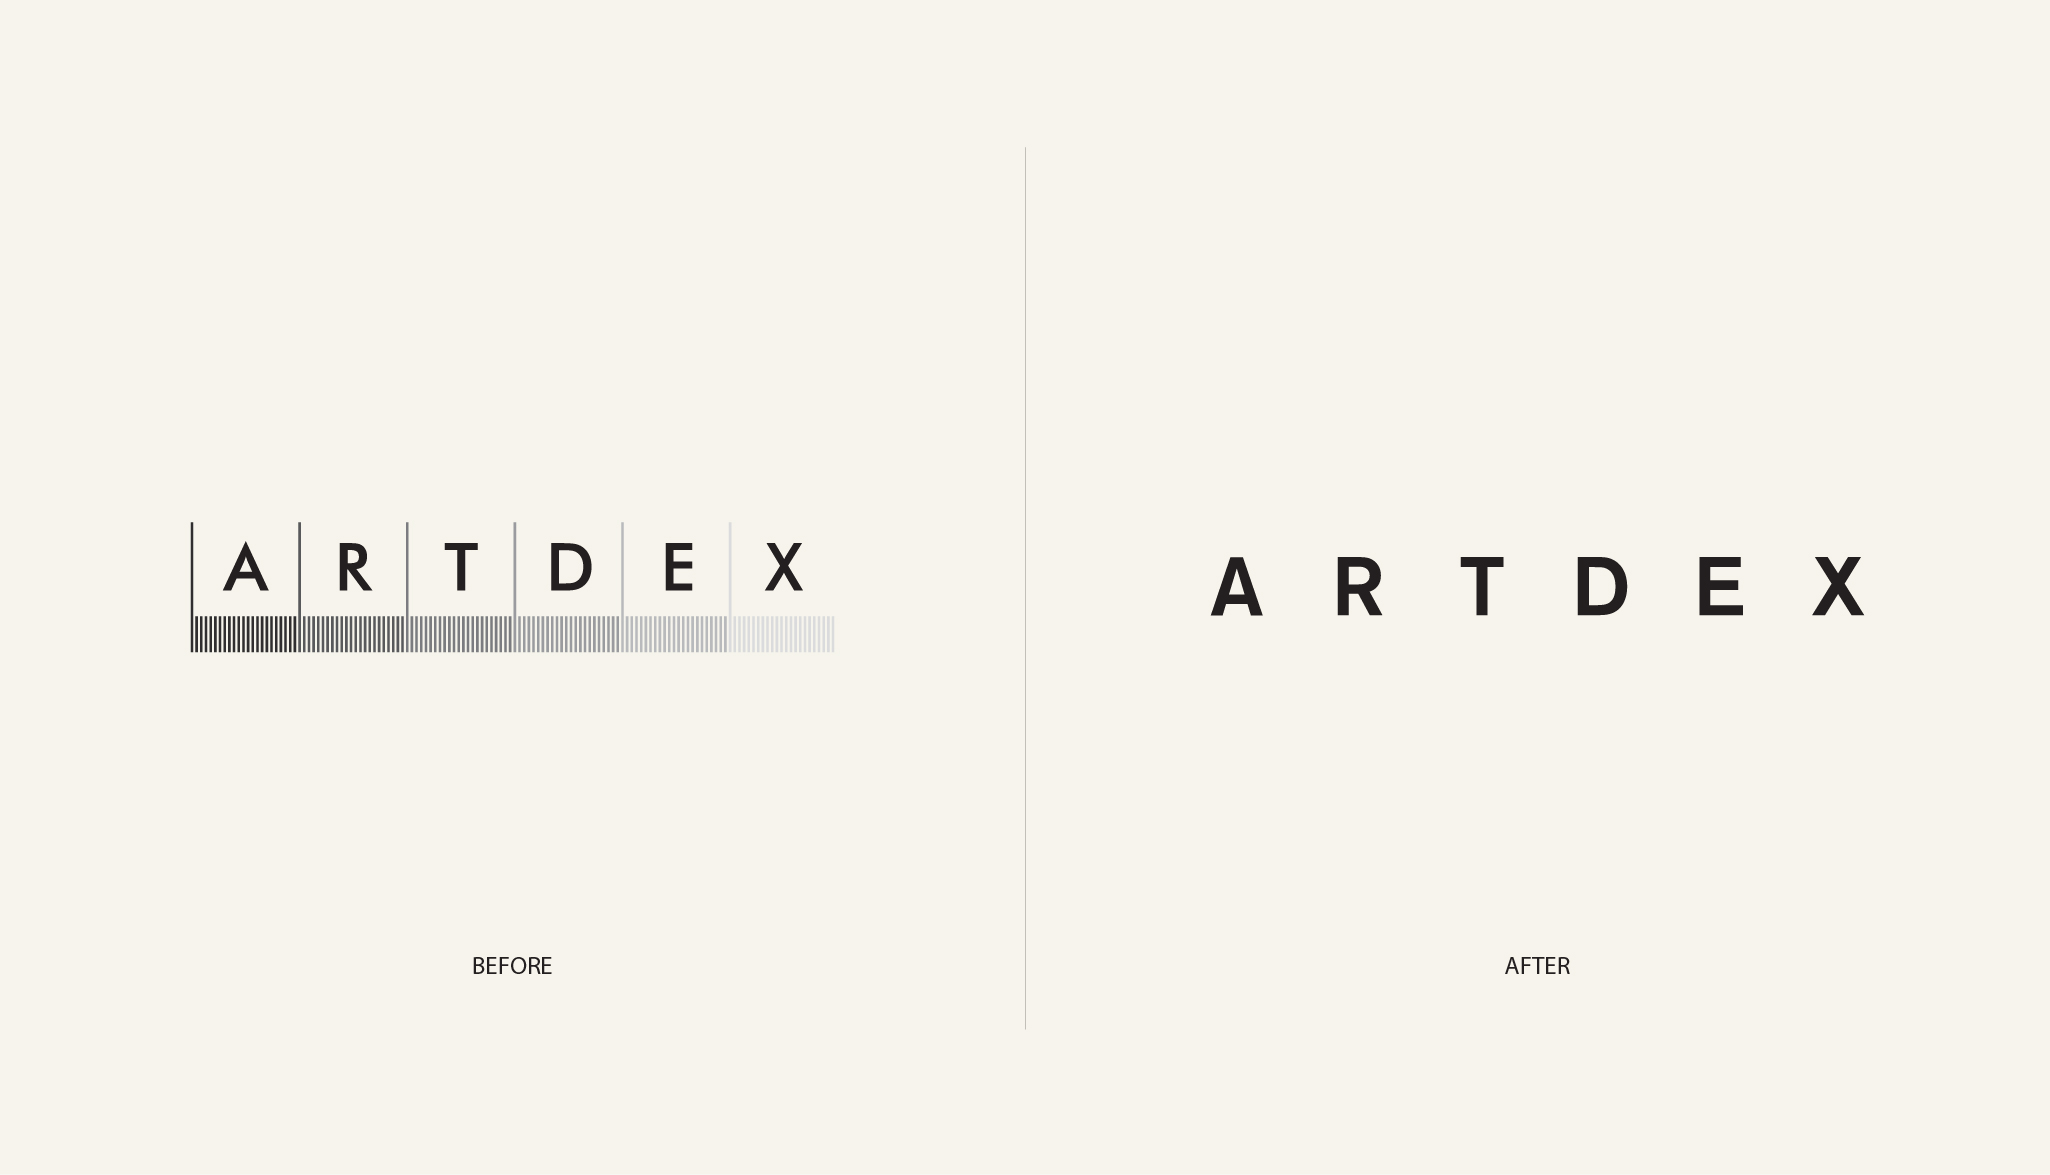 logo_artdex_final_before_after